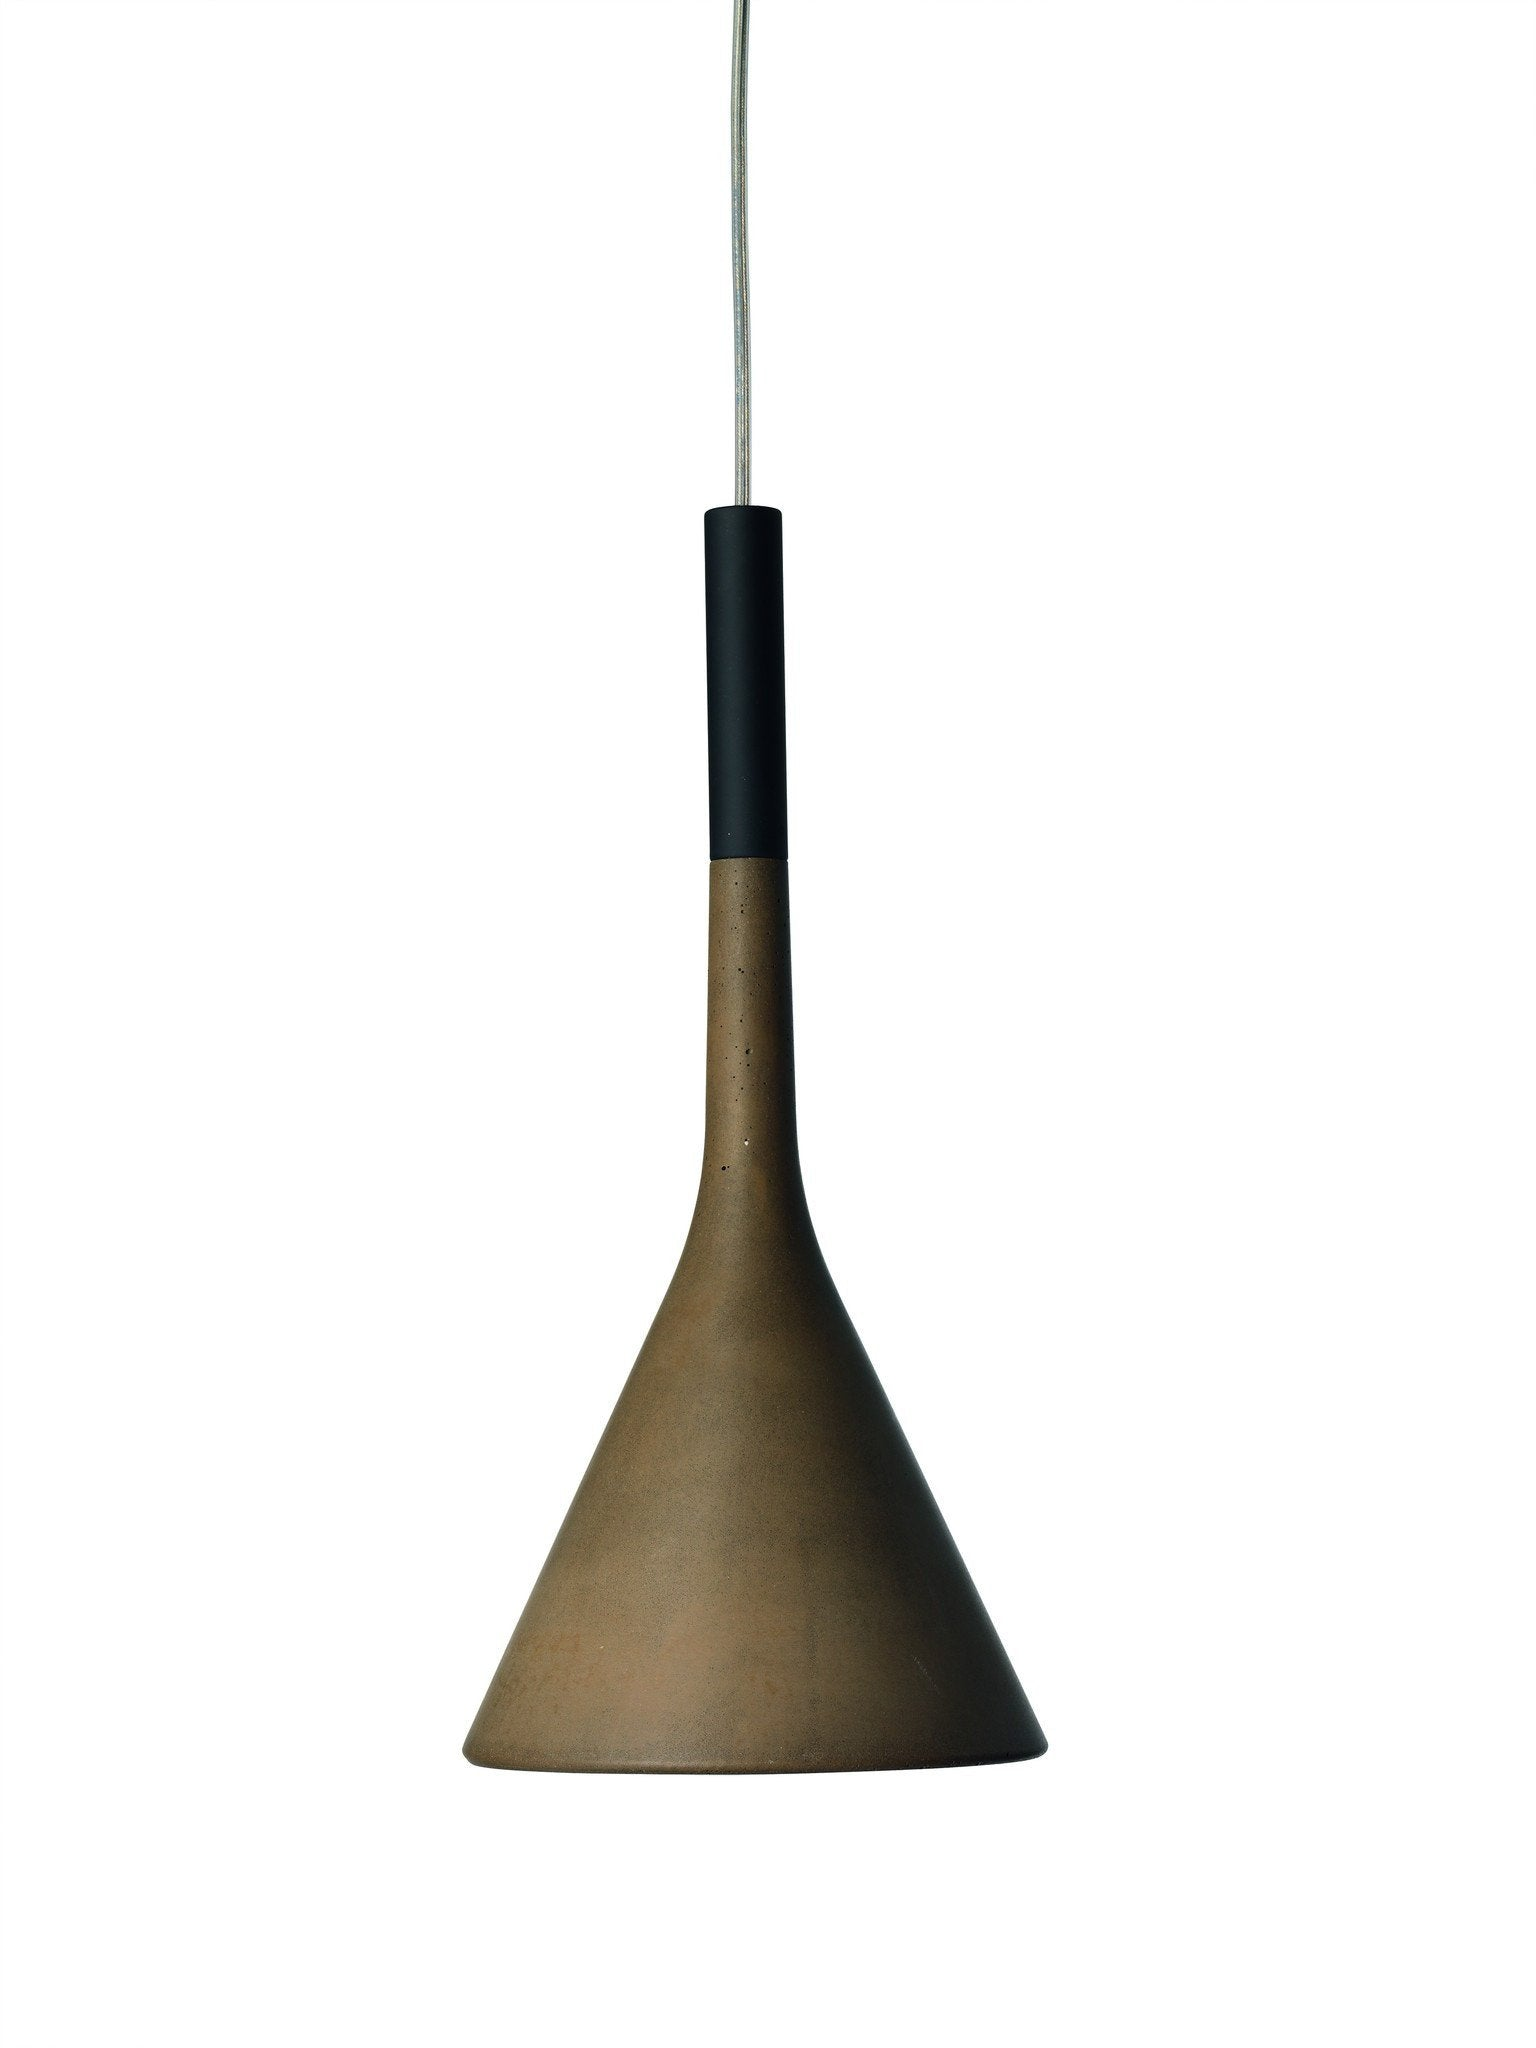 Foscarini Aplomb LED Pendant in Brown - London Lighting - 1